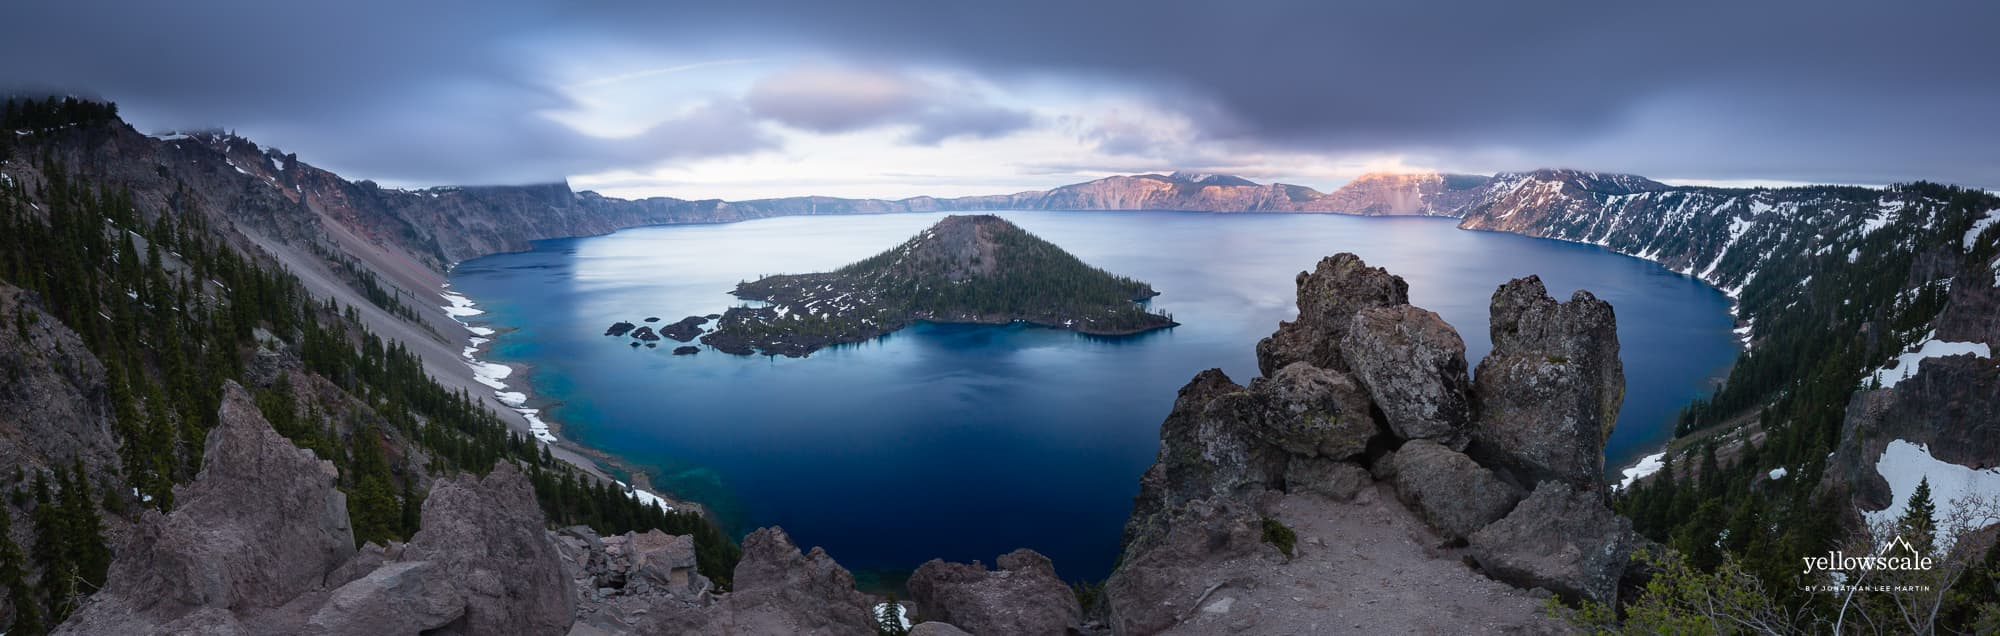 Pano of Crater Lake, Oregon